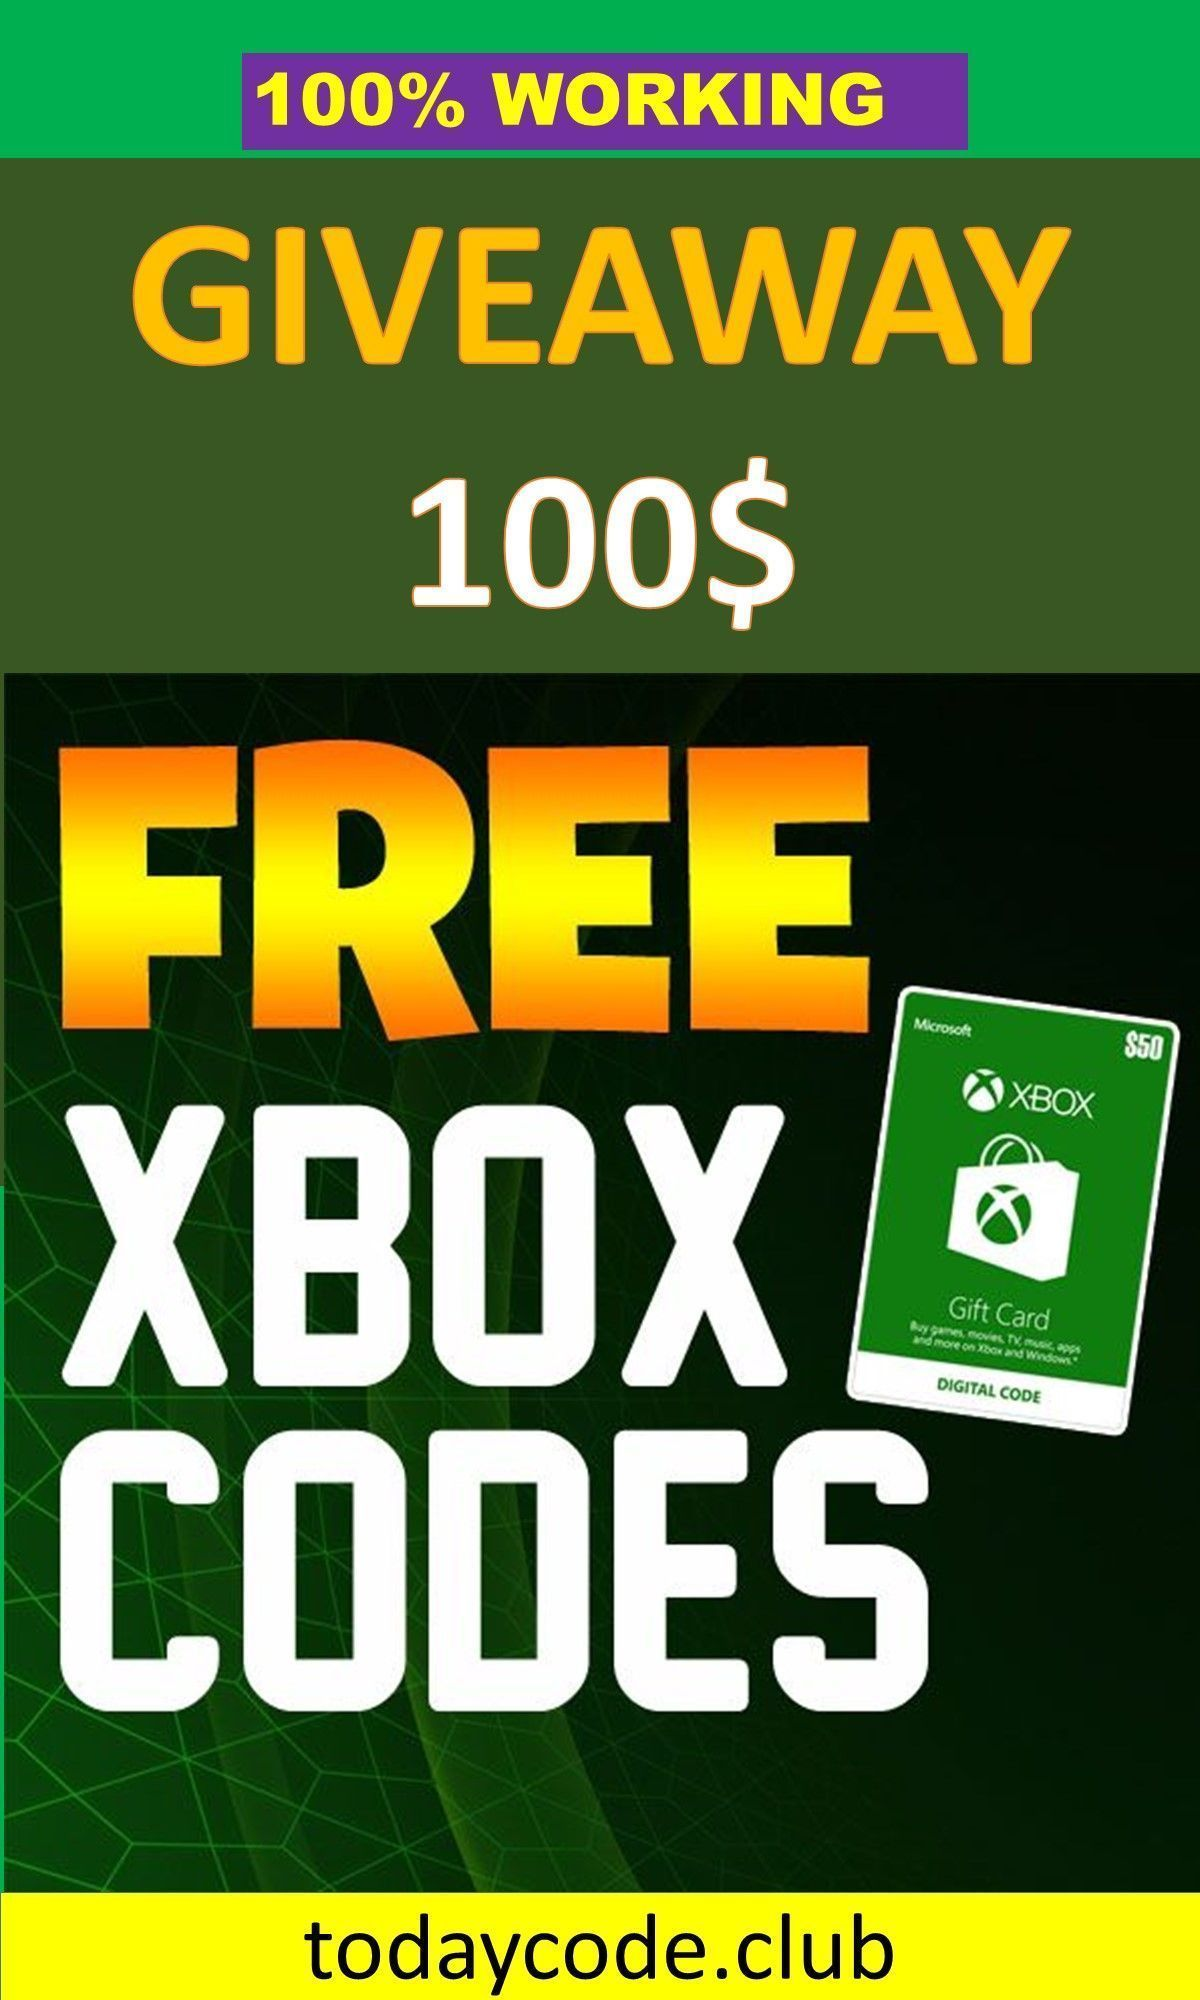 Free xbox gift card generator get an xbox gift card